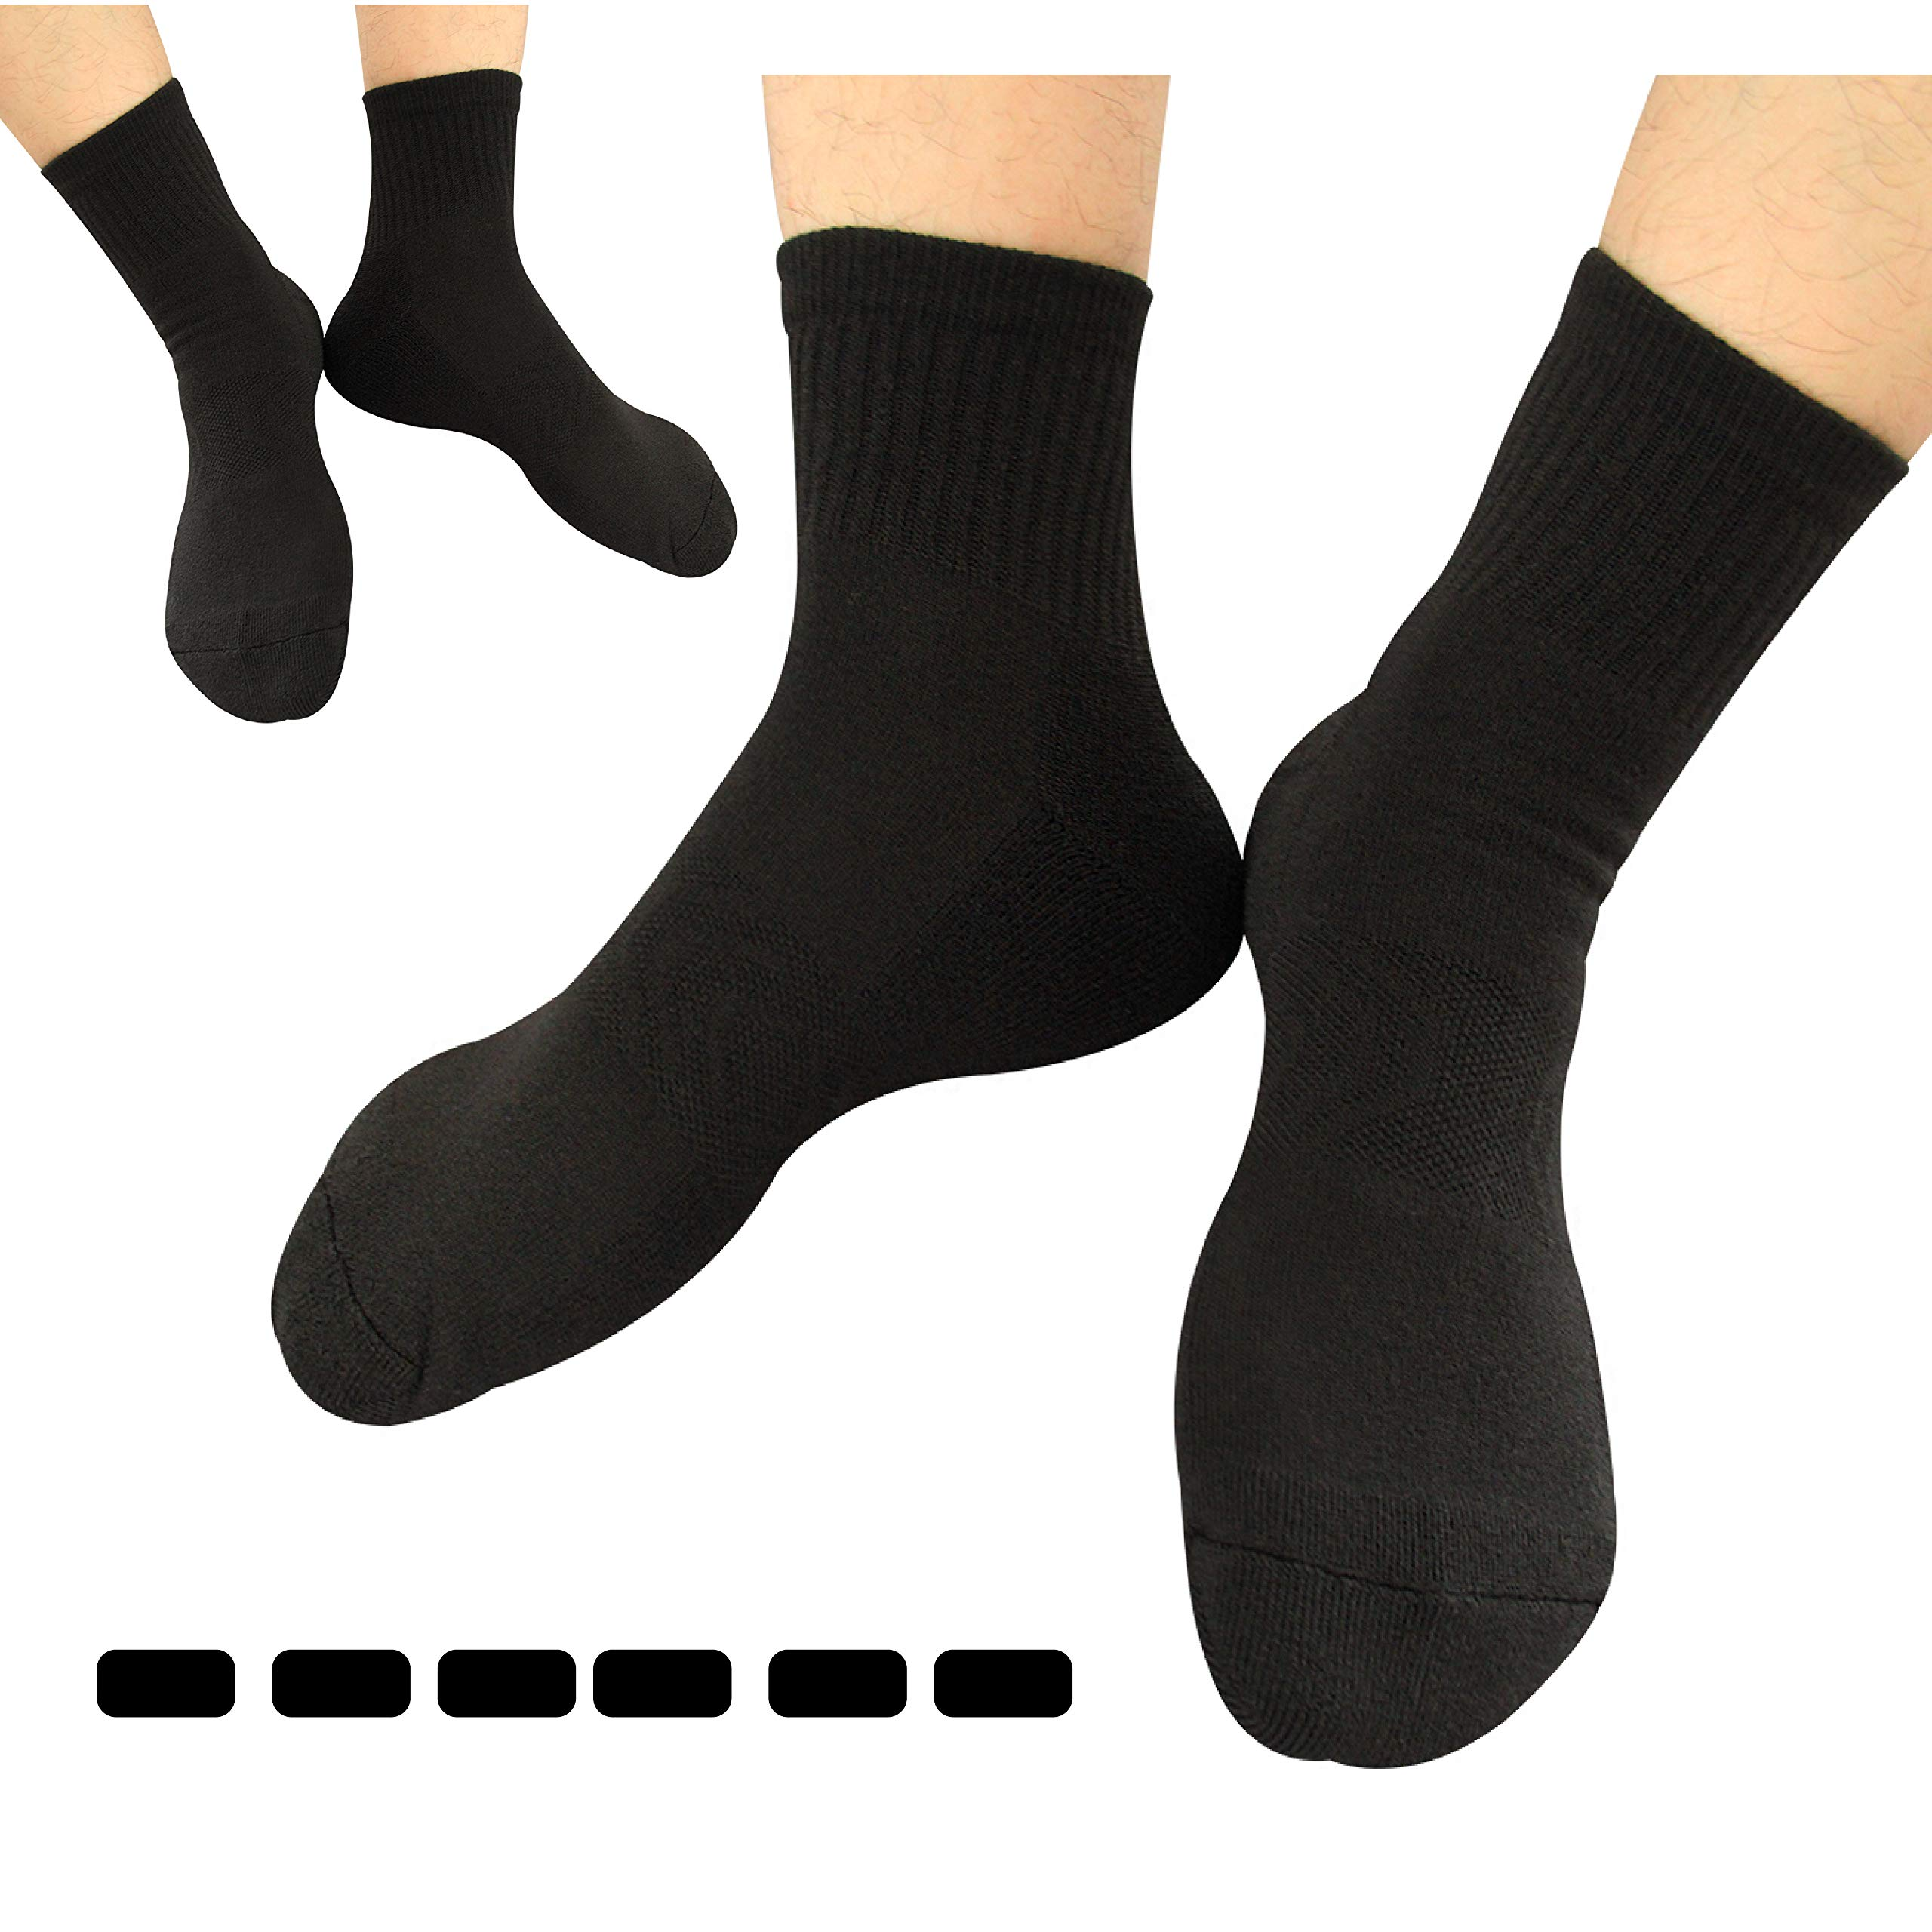 Zisuper Men's 6 Pack Athletic Crew Dress Socks Breathable Performance Sports High Ankle Mid Calf Workout Socks for Men